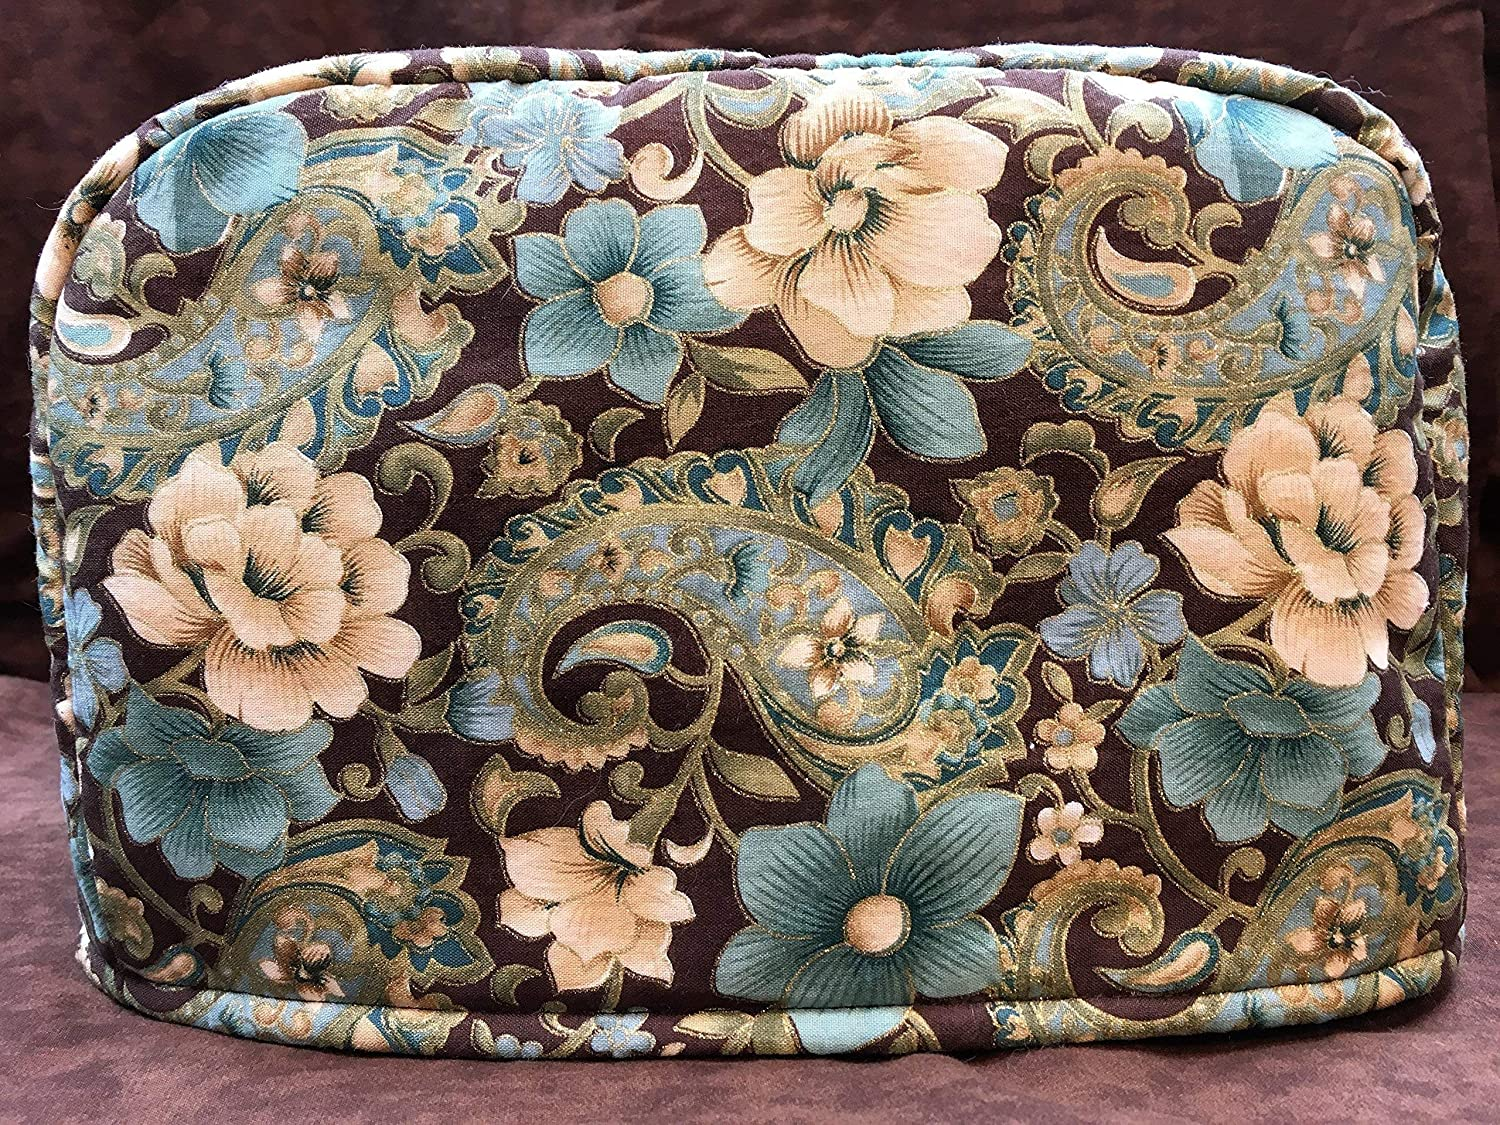 x 7.5 h Teal and Cream Flowers and Paisley on Brown Reversible 2-Slice Toaster Cover 11.5 w x 5.5 l